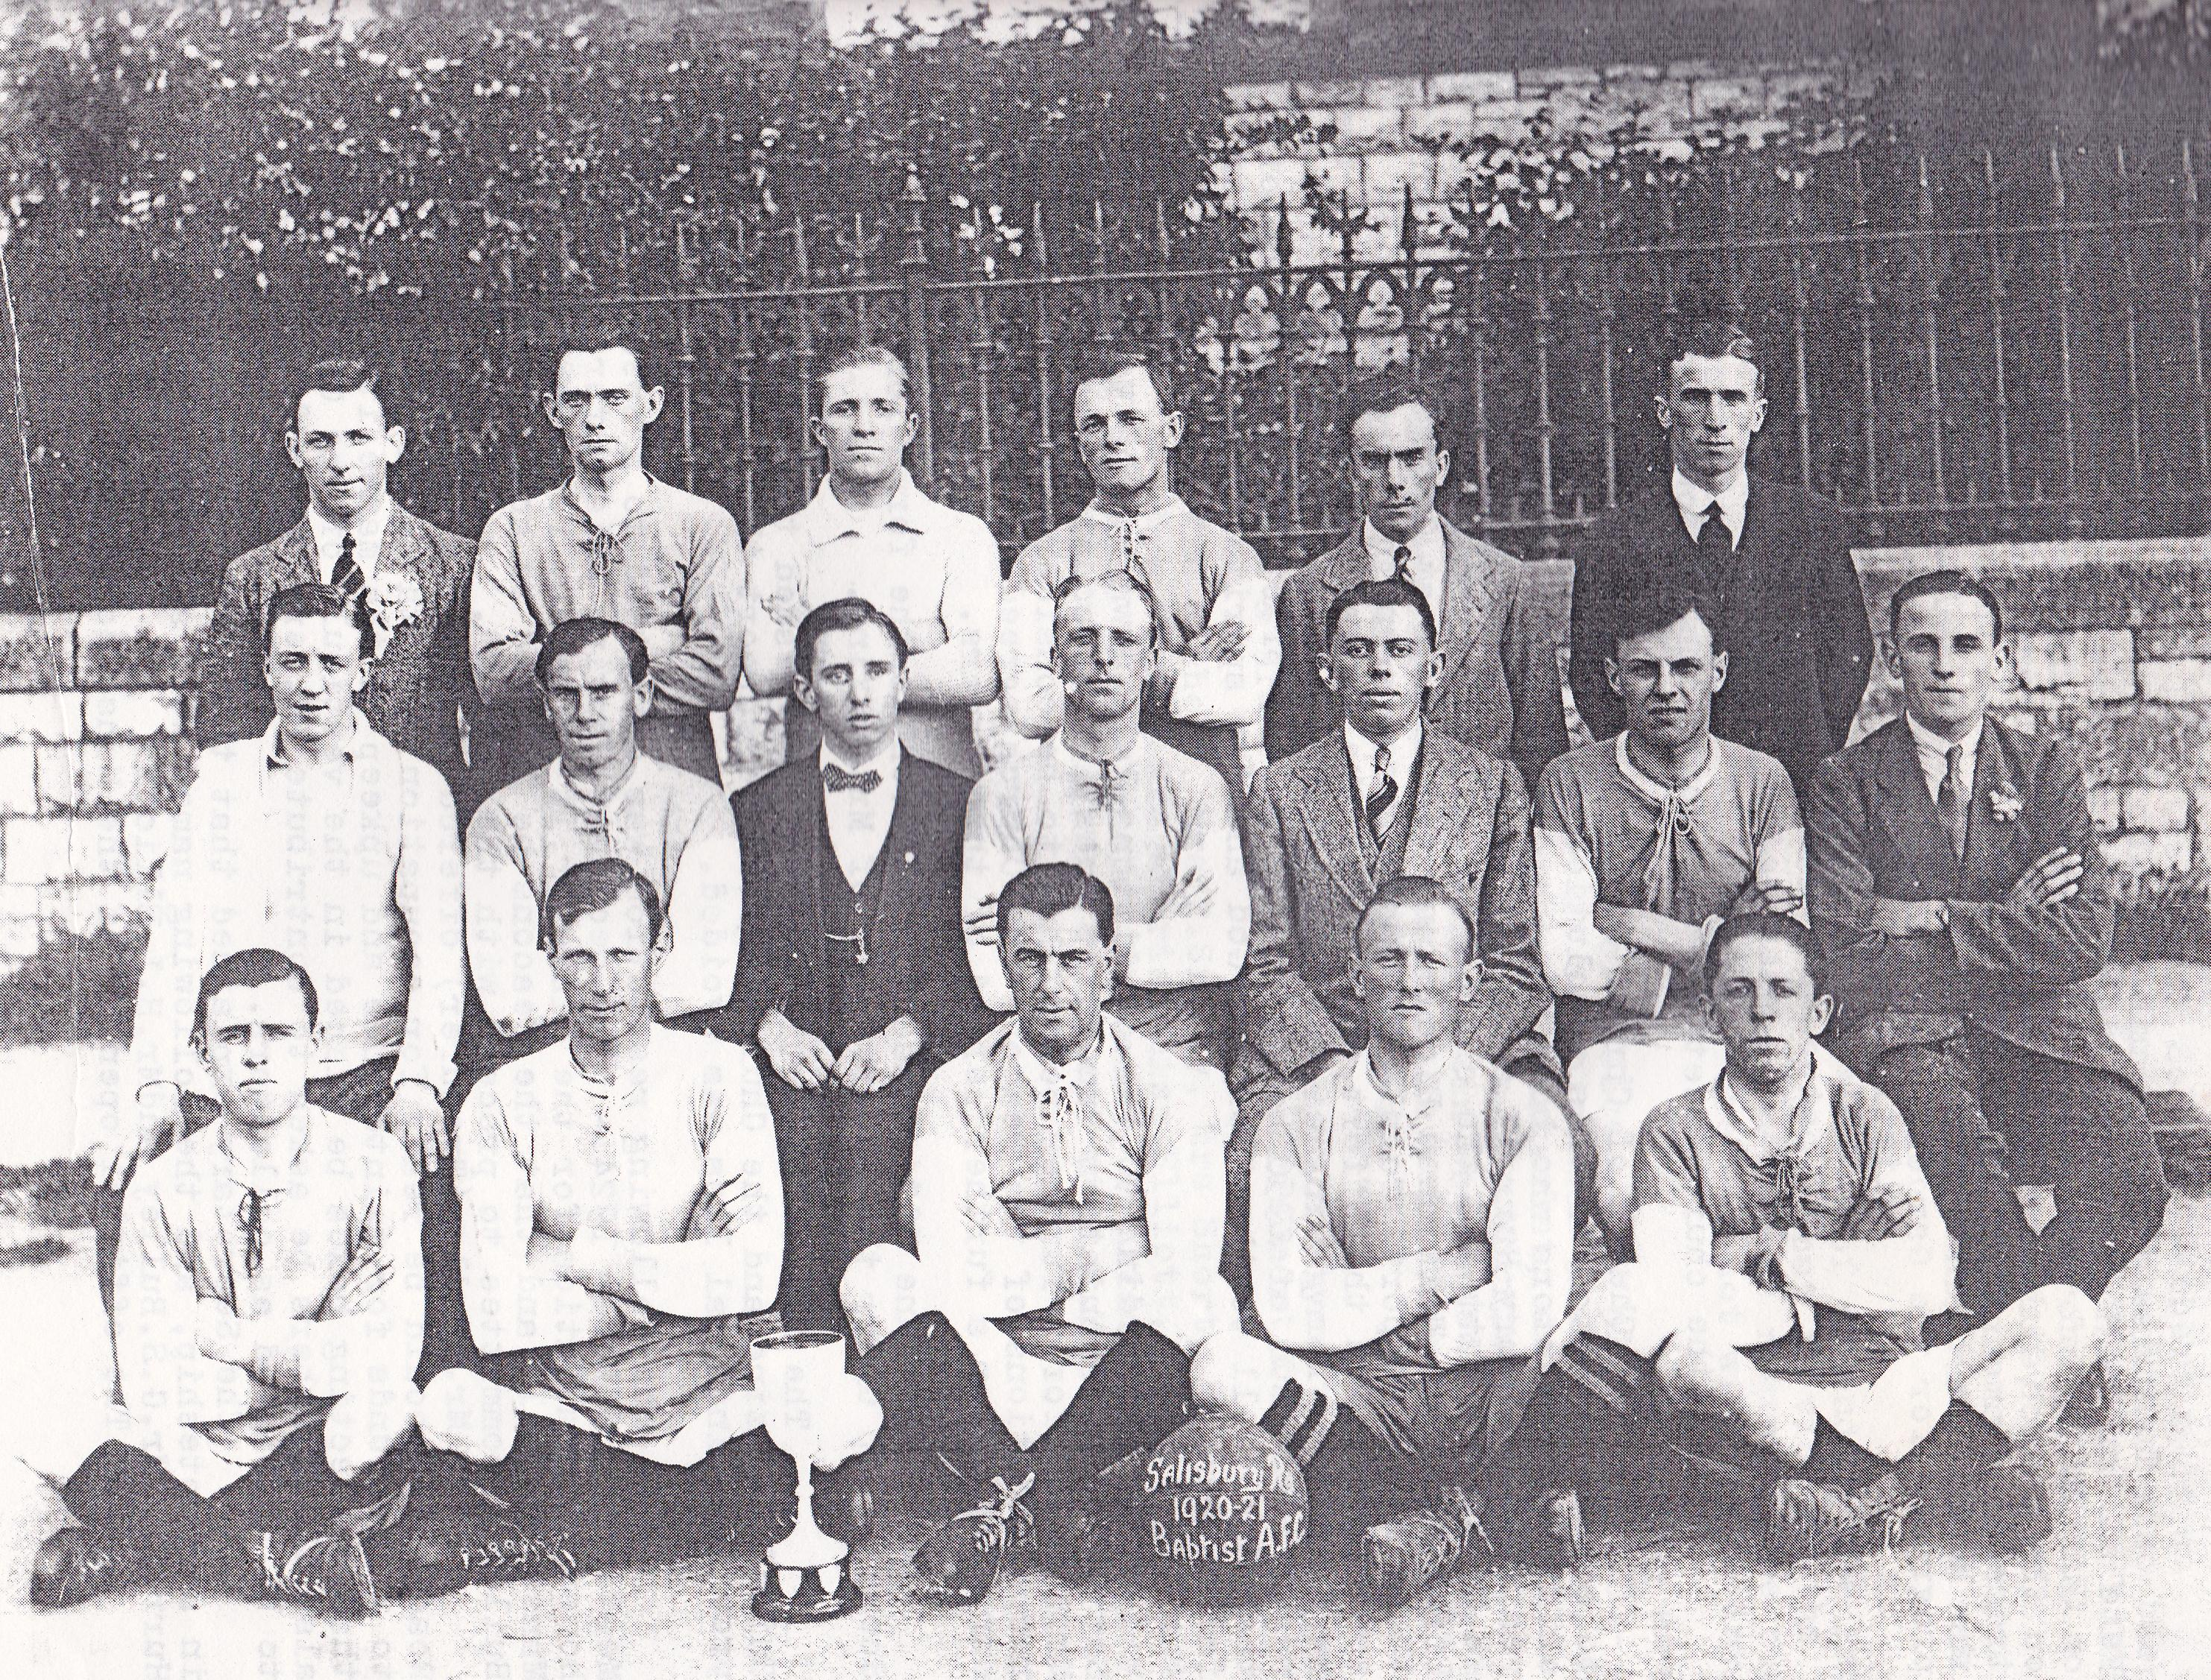 The Church Football Team, 1921.